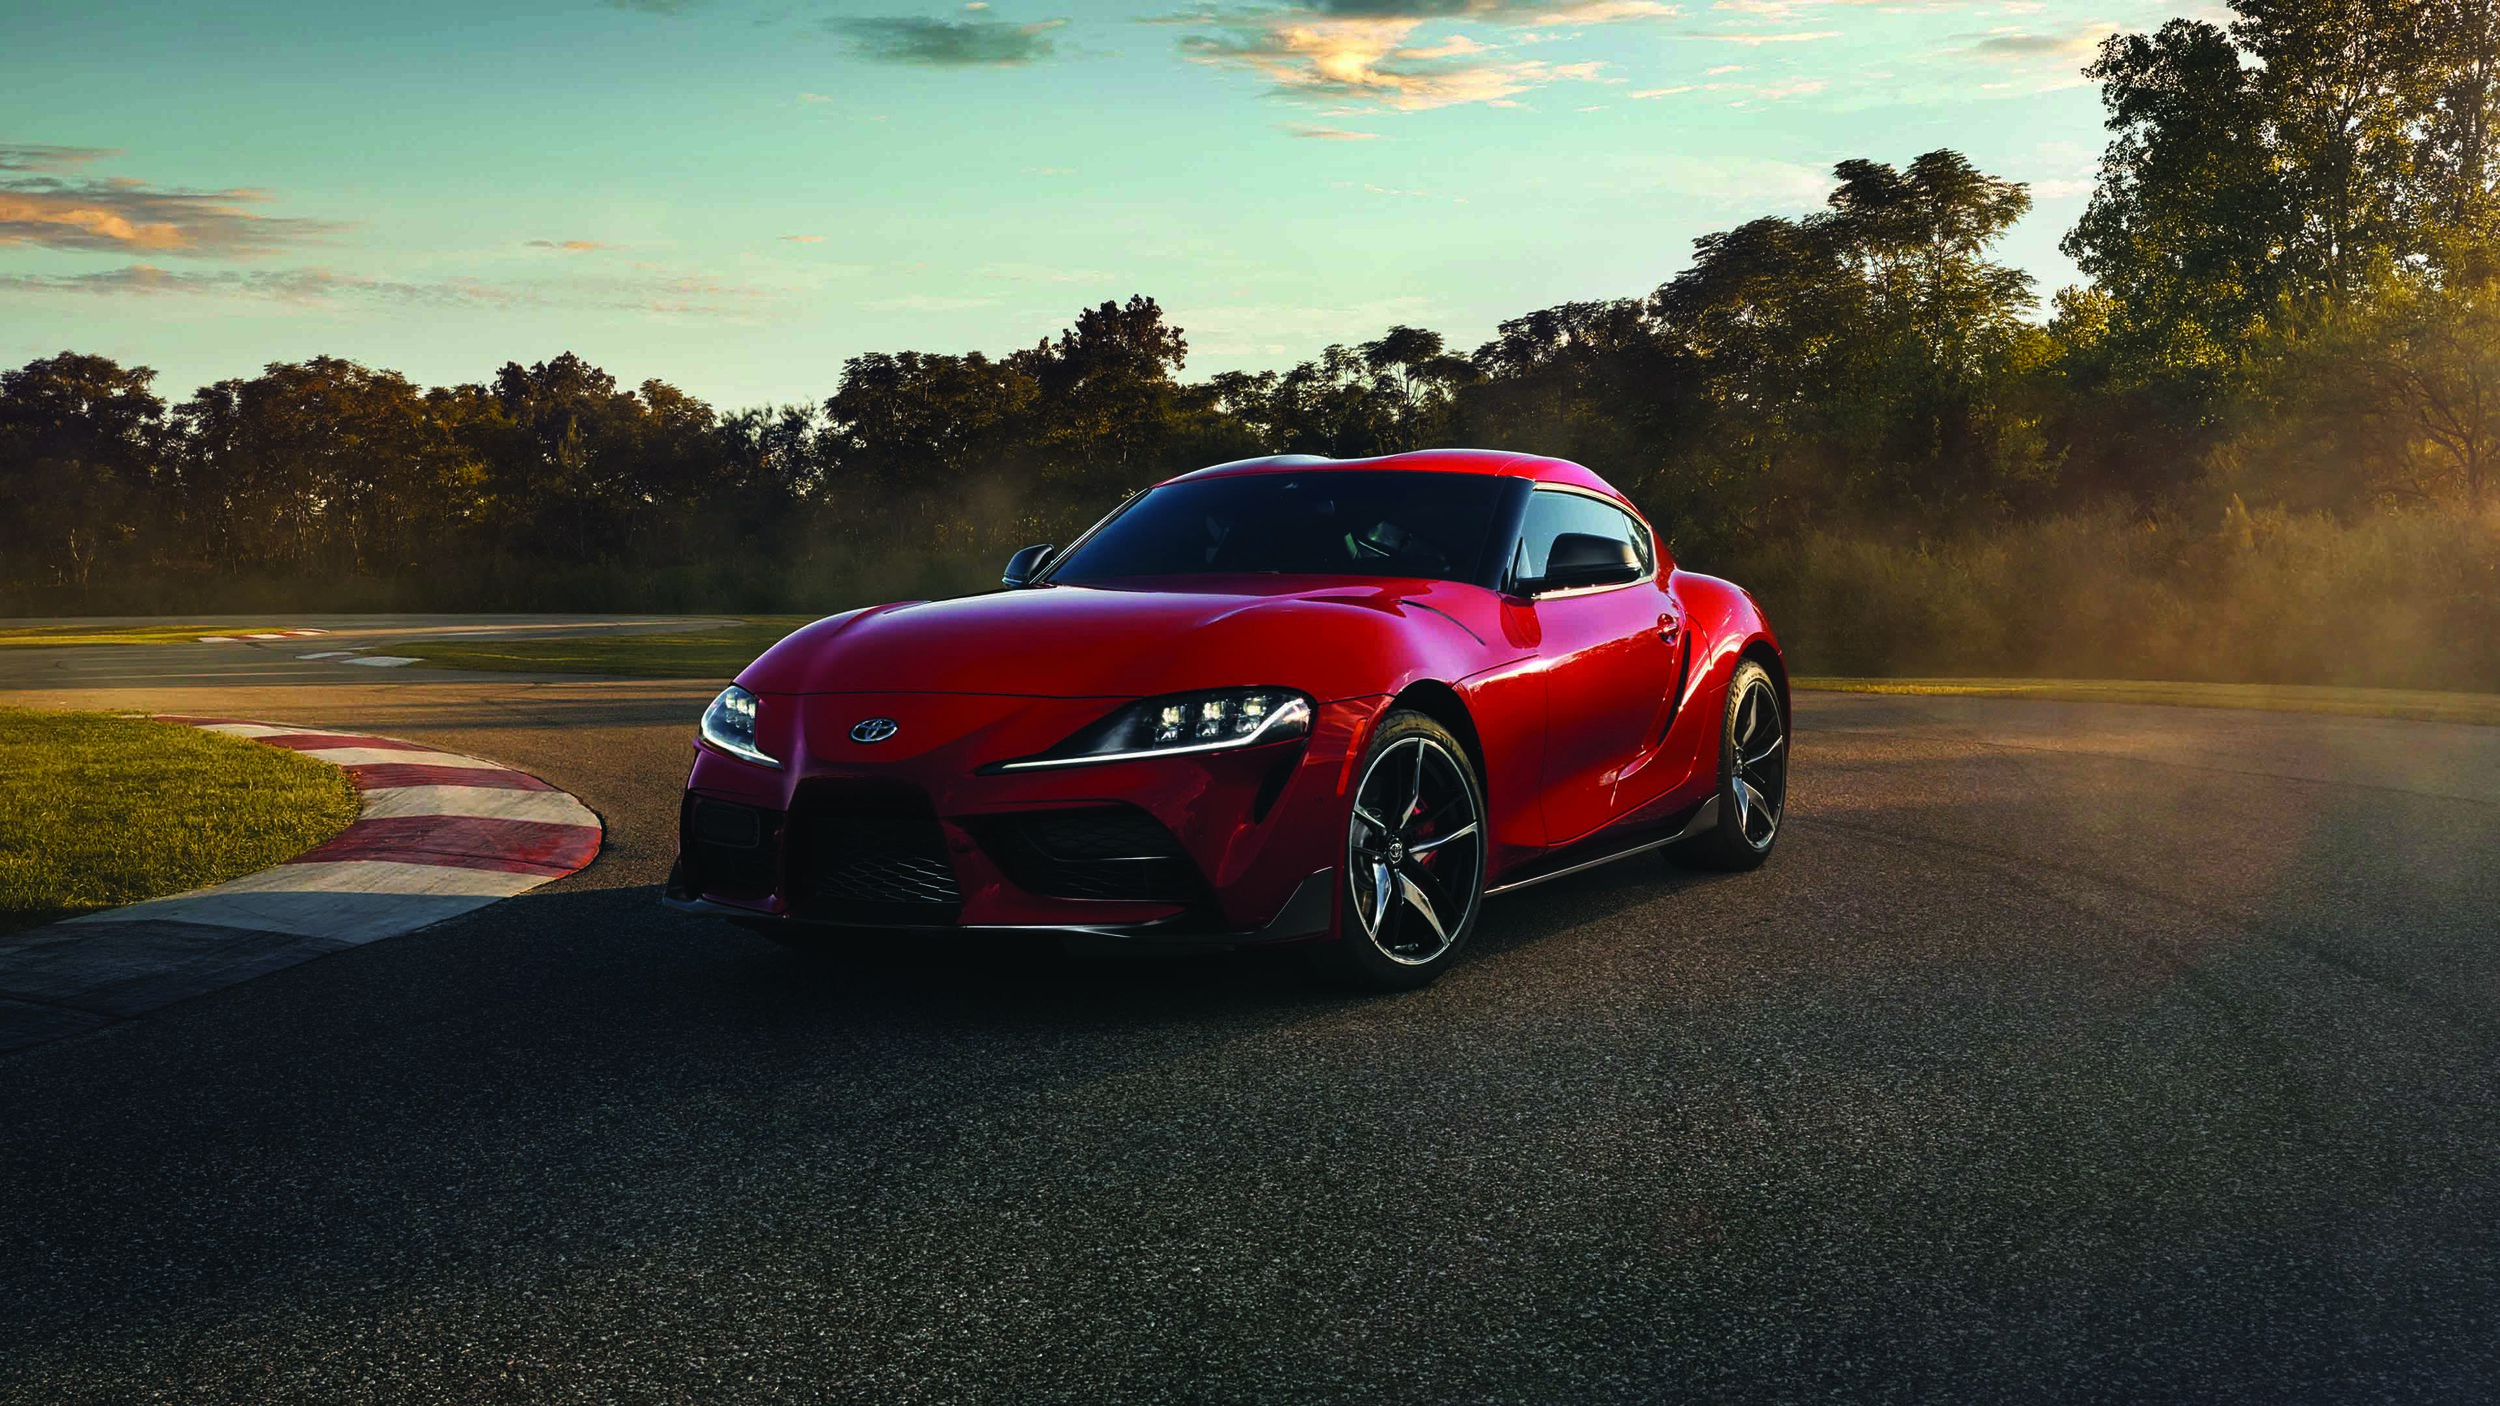 The GR Supra will be revealed to the public (002).jpg